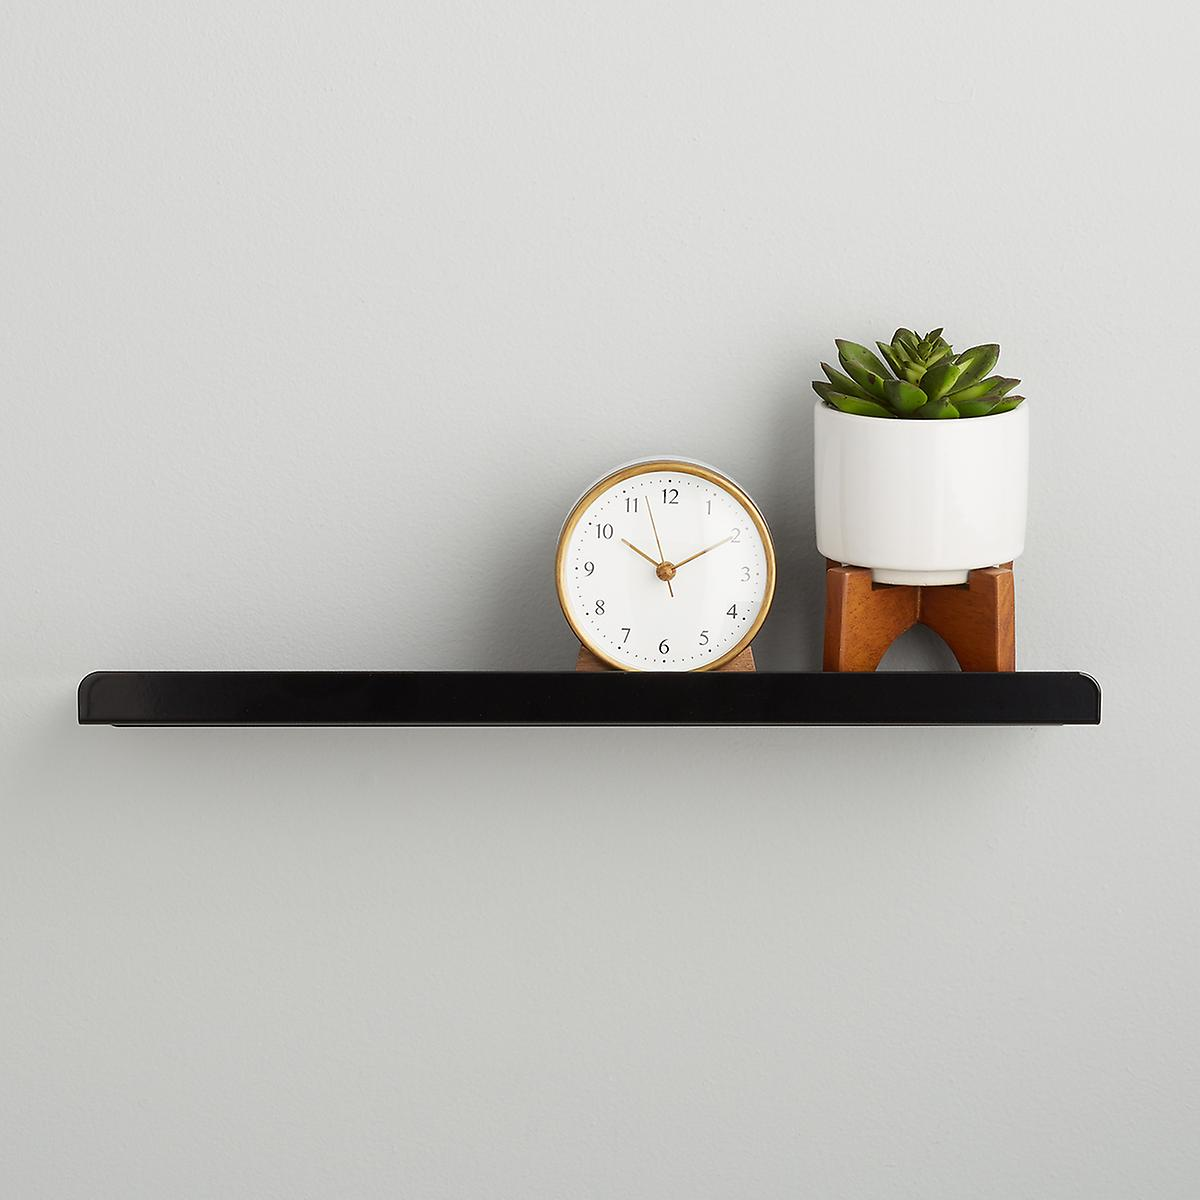 Simple Ledge Shelf by Umbra